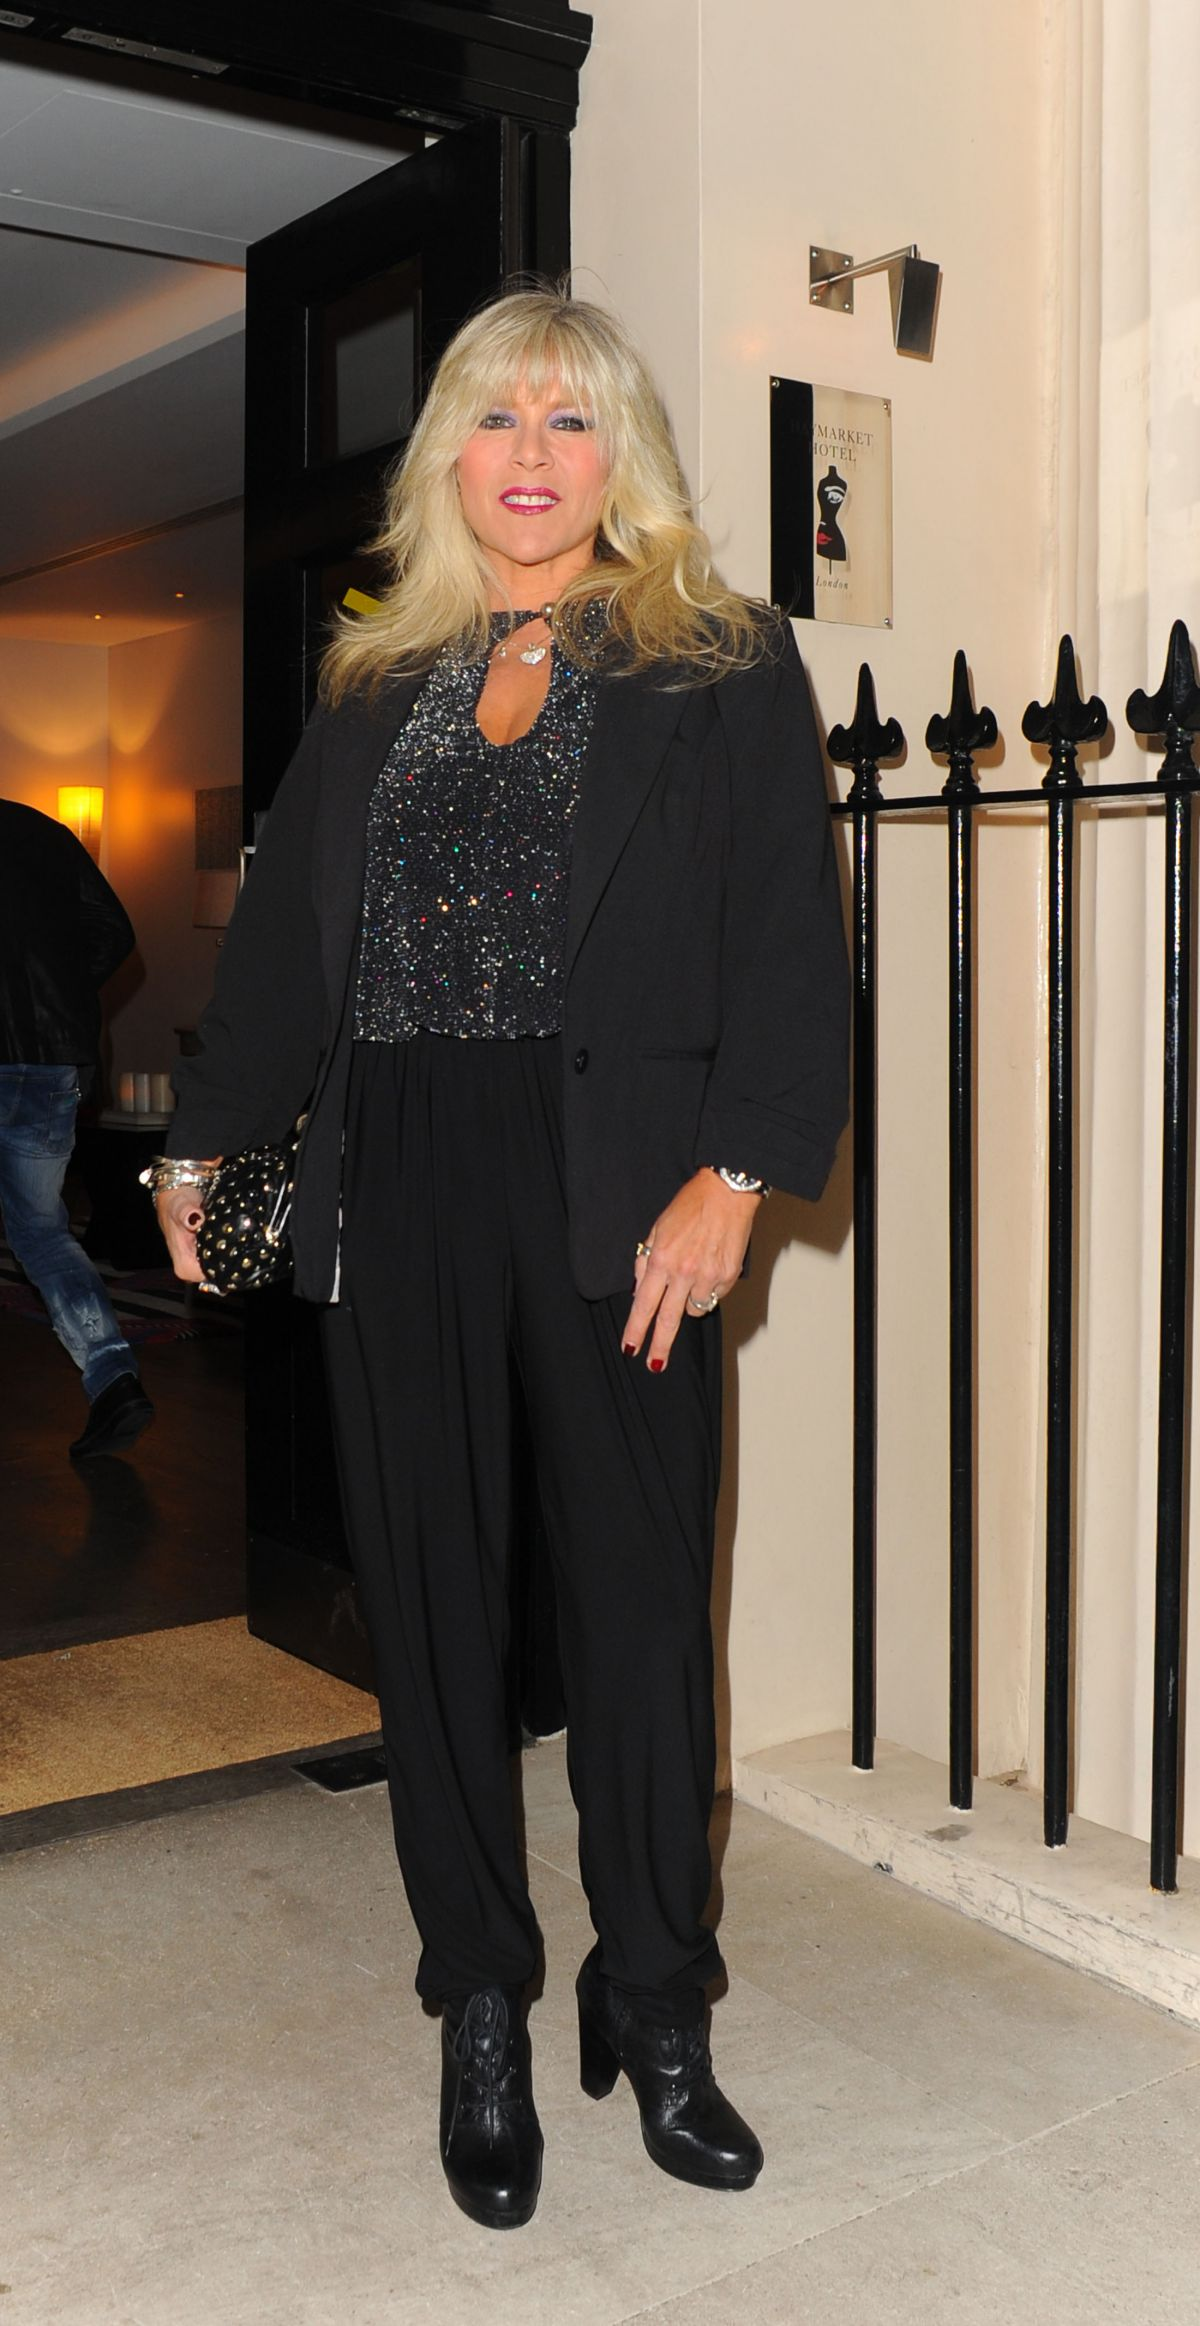 SAMANTHA FOX at Leona Lewis x Kiss Nails Launch in London 02/10/2016